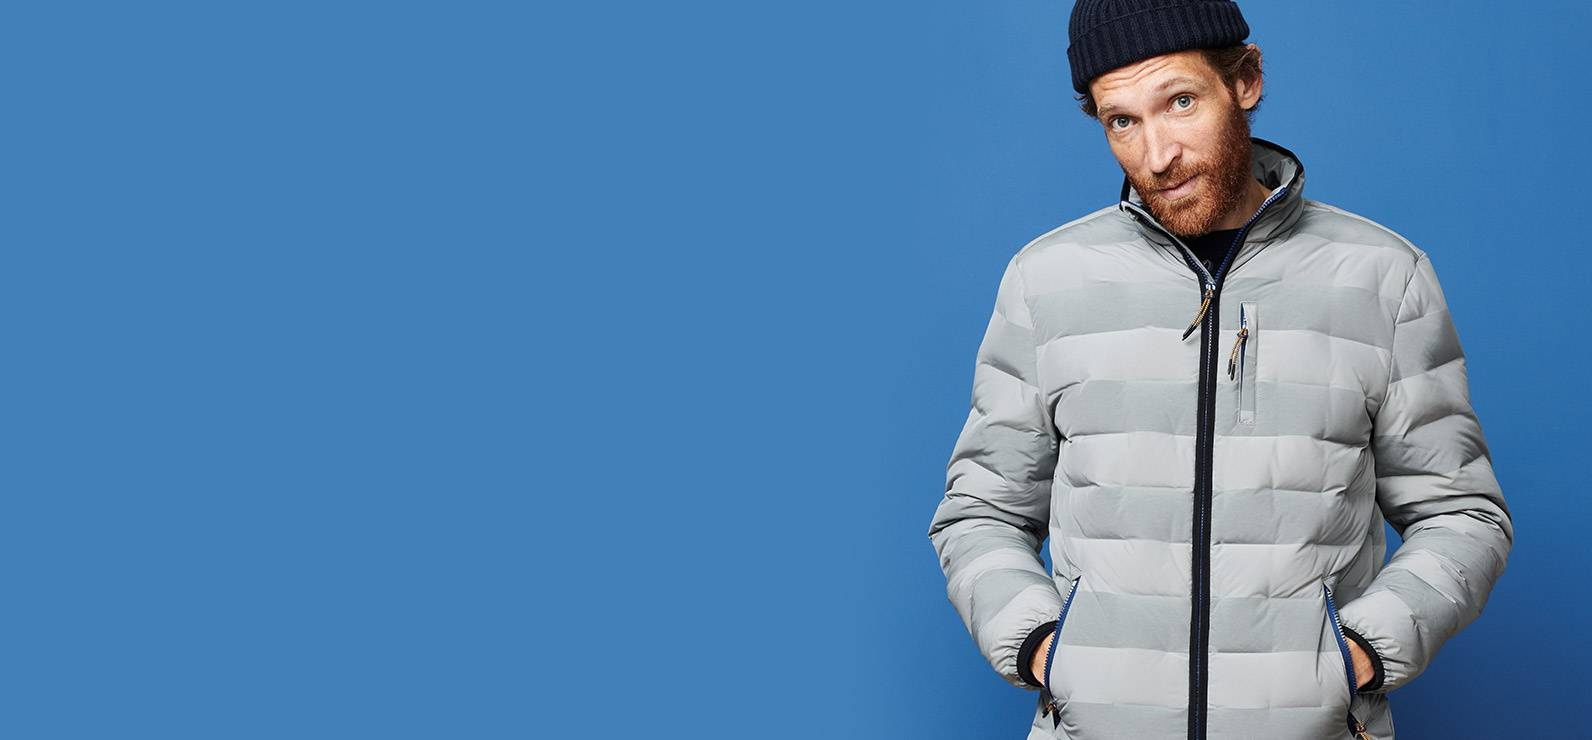 Where can get the best winter jackets for men and women?